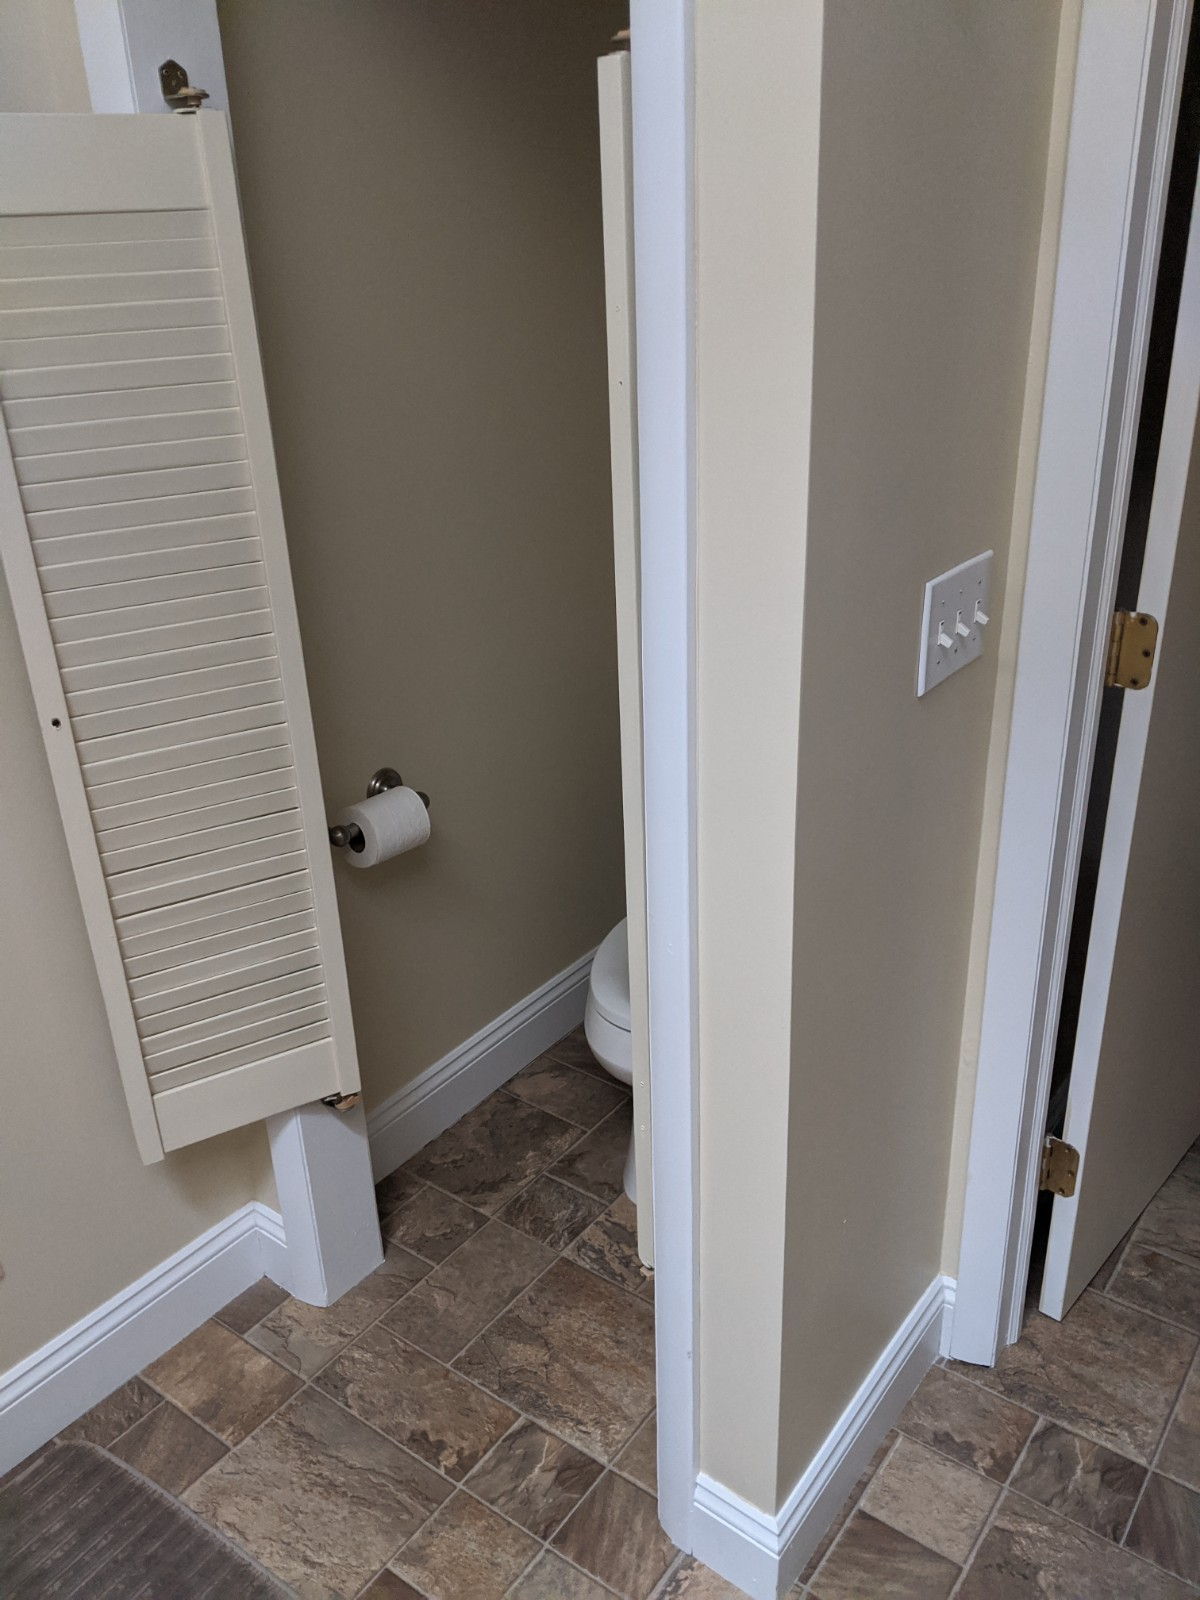 This pictures shows the outdated door on the water closet, as well as the brown 6 x 6 mixed tiles on the linoleum floor.